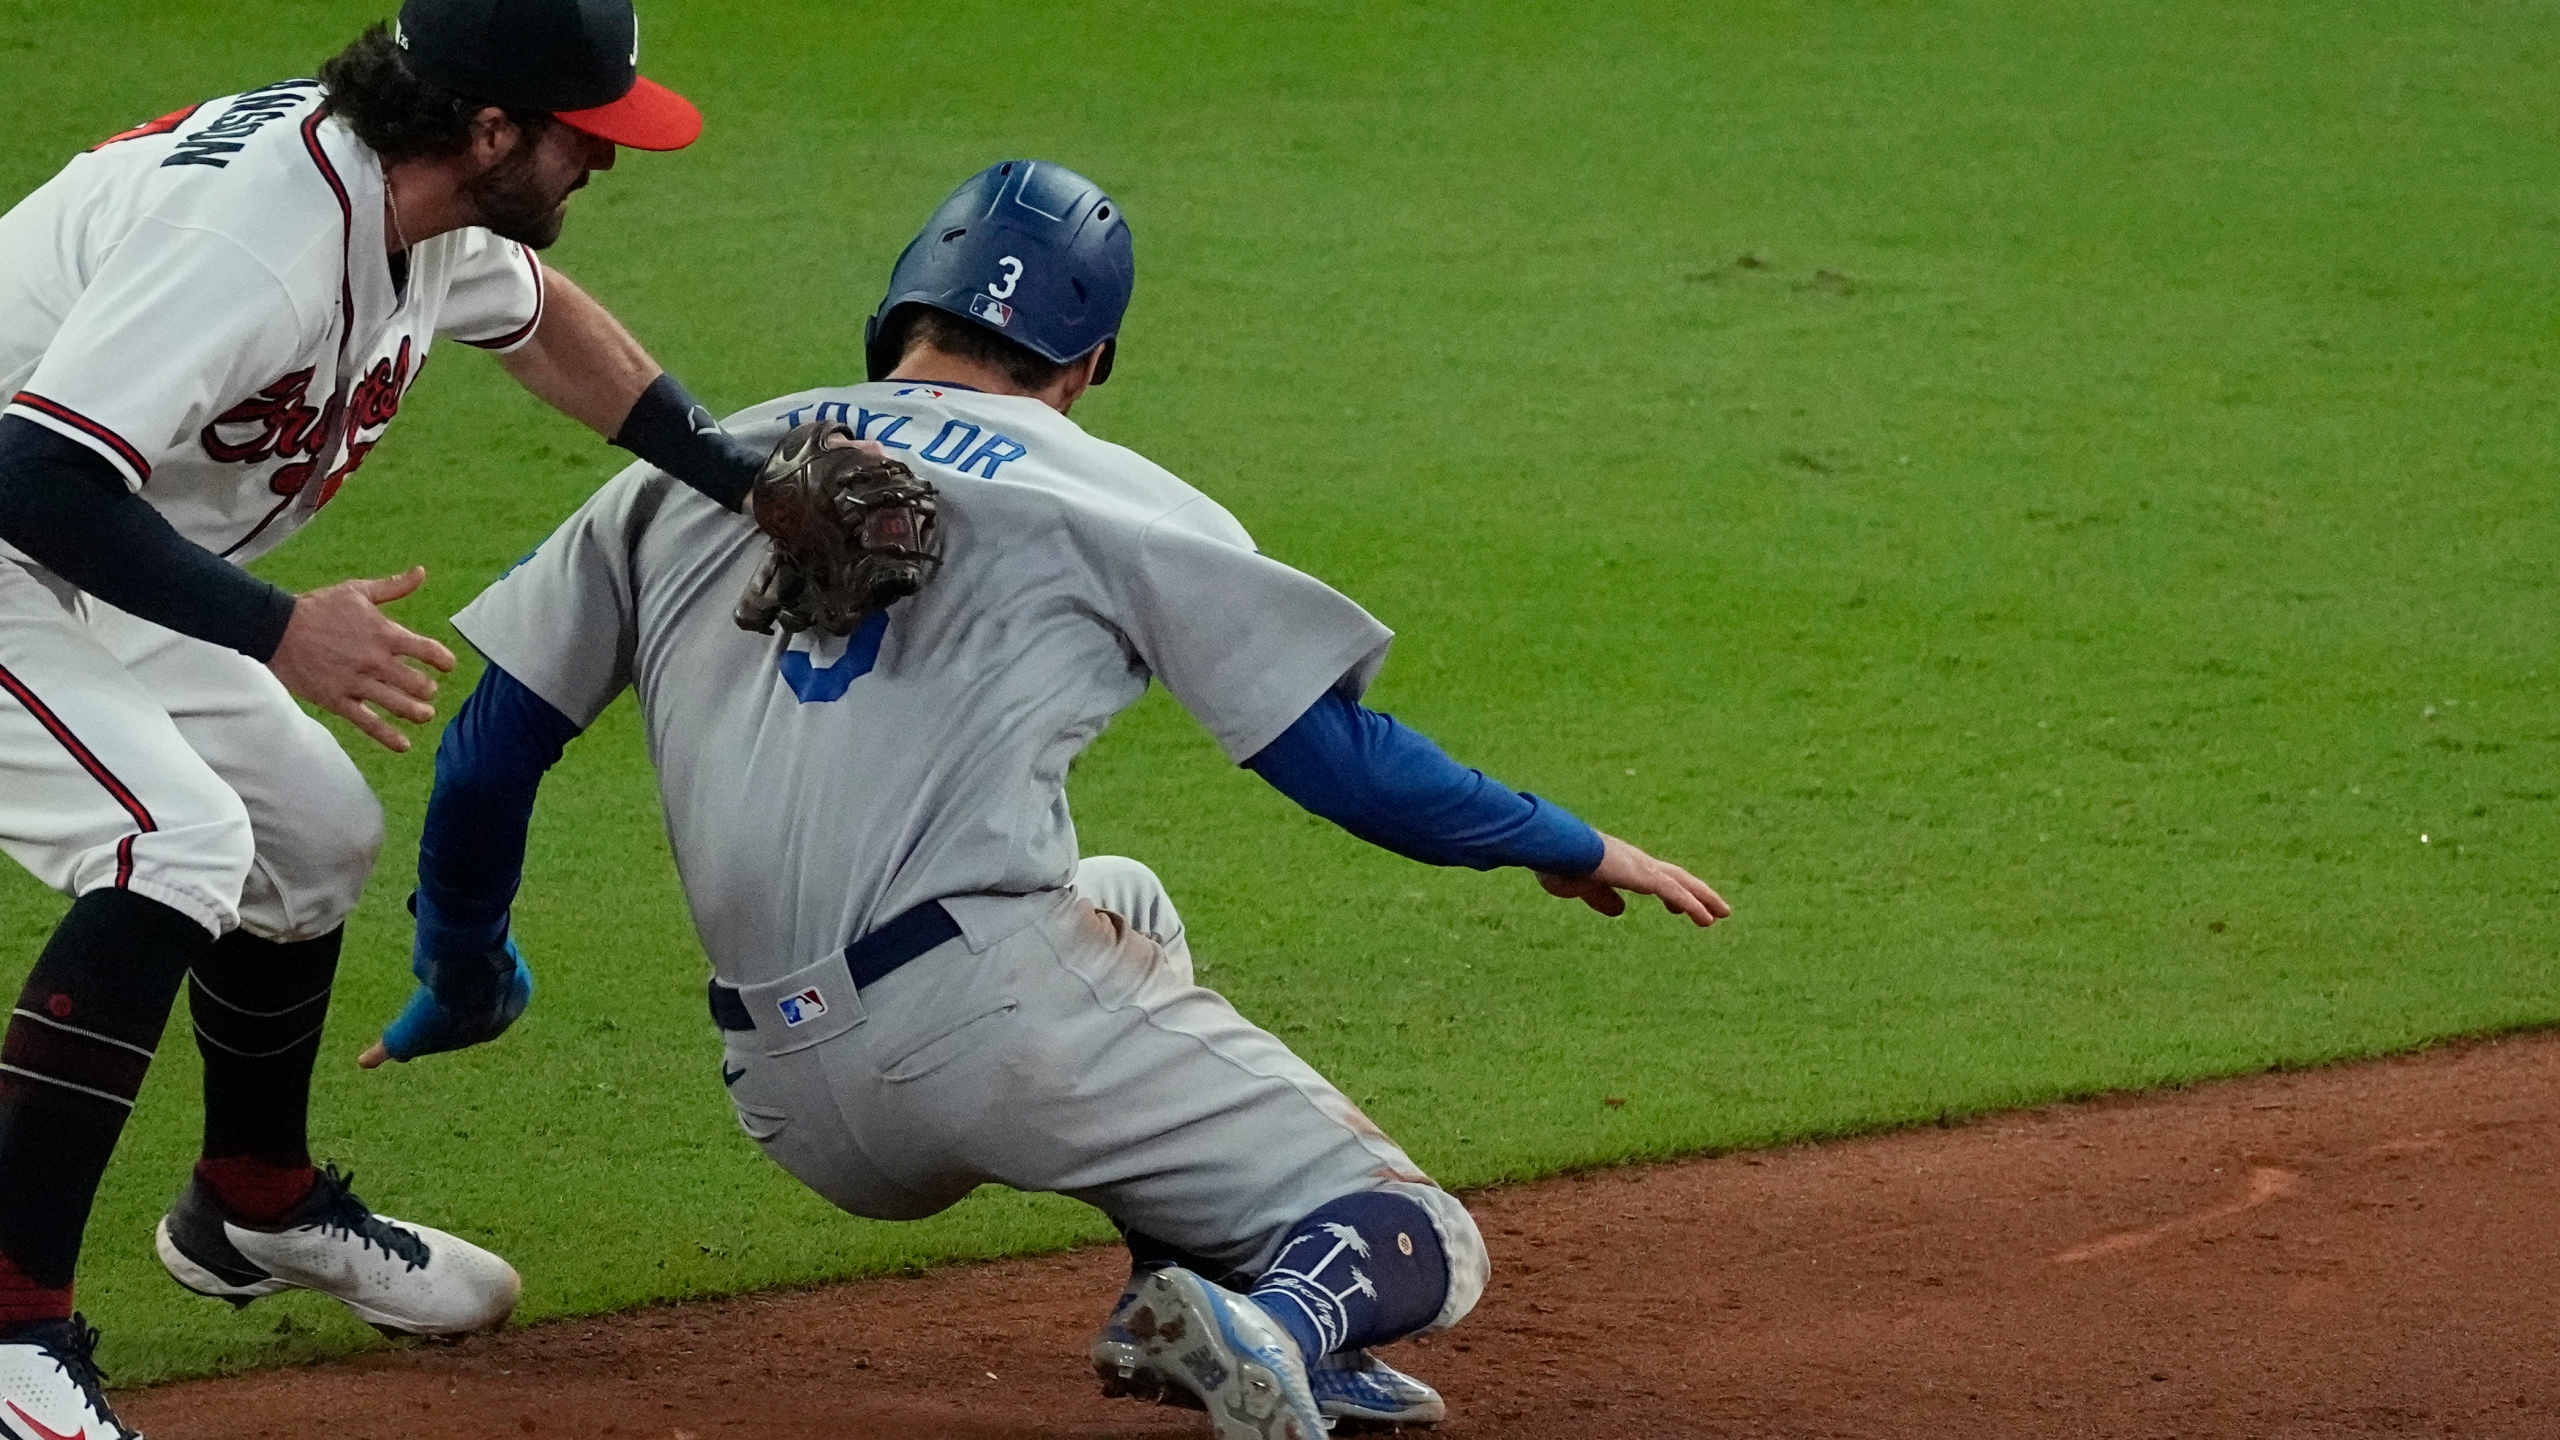 Los Angeles Dodgers' Chris Taylor (3) is tagged out by Atlanta Braves shortstop Dansby Swanson after being caught in a run down on base hit by Dodgers' Cody Bellinger during the ninth inning in Game 1 of baseball's National League Championship Series Saturday, Oct. 16, 2021, in Atlanta. (AP Photo/John Bazemore)